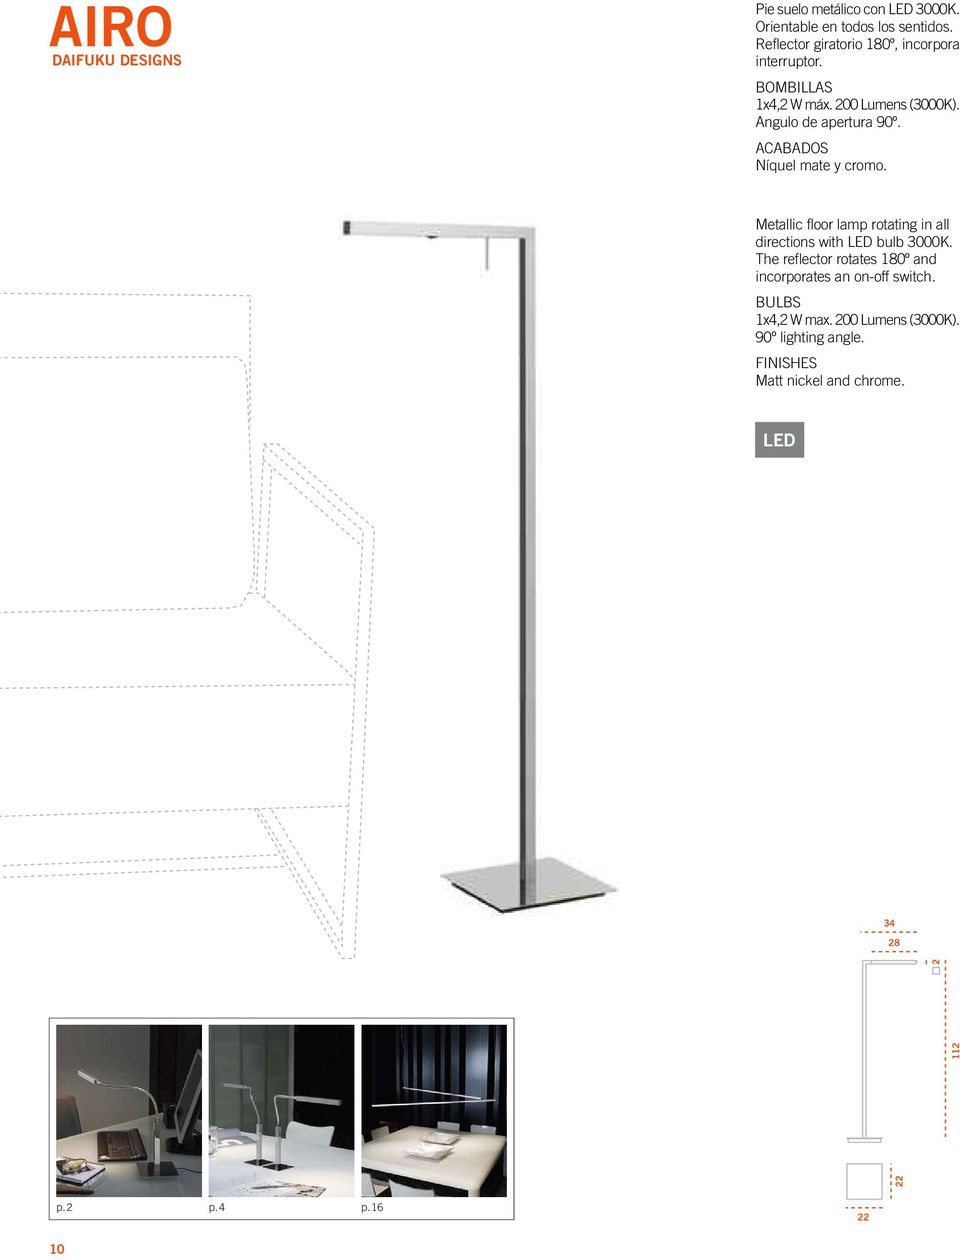 ACABADOS Níquel mate y cromo. Metallic floor lamp rotating in all directions with LED bulb 3000K.